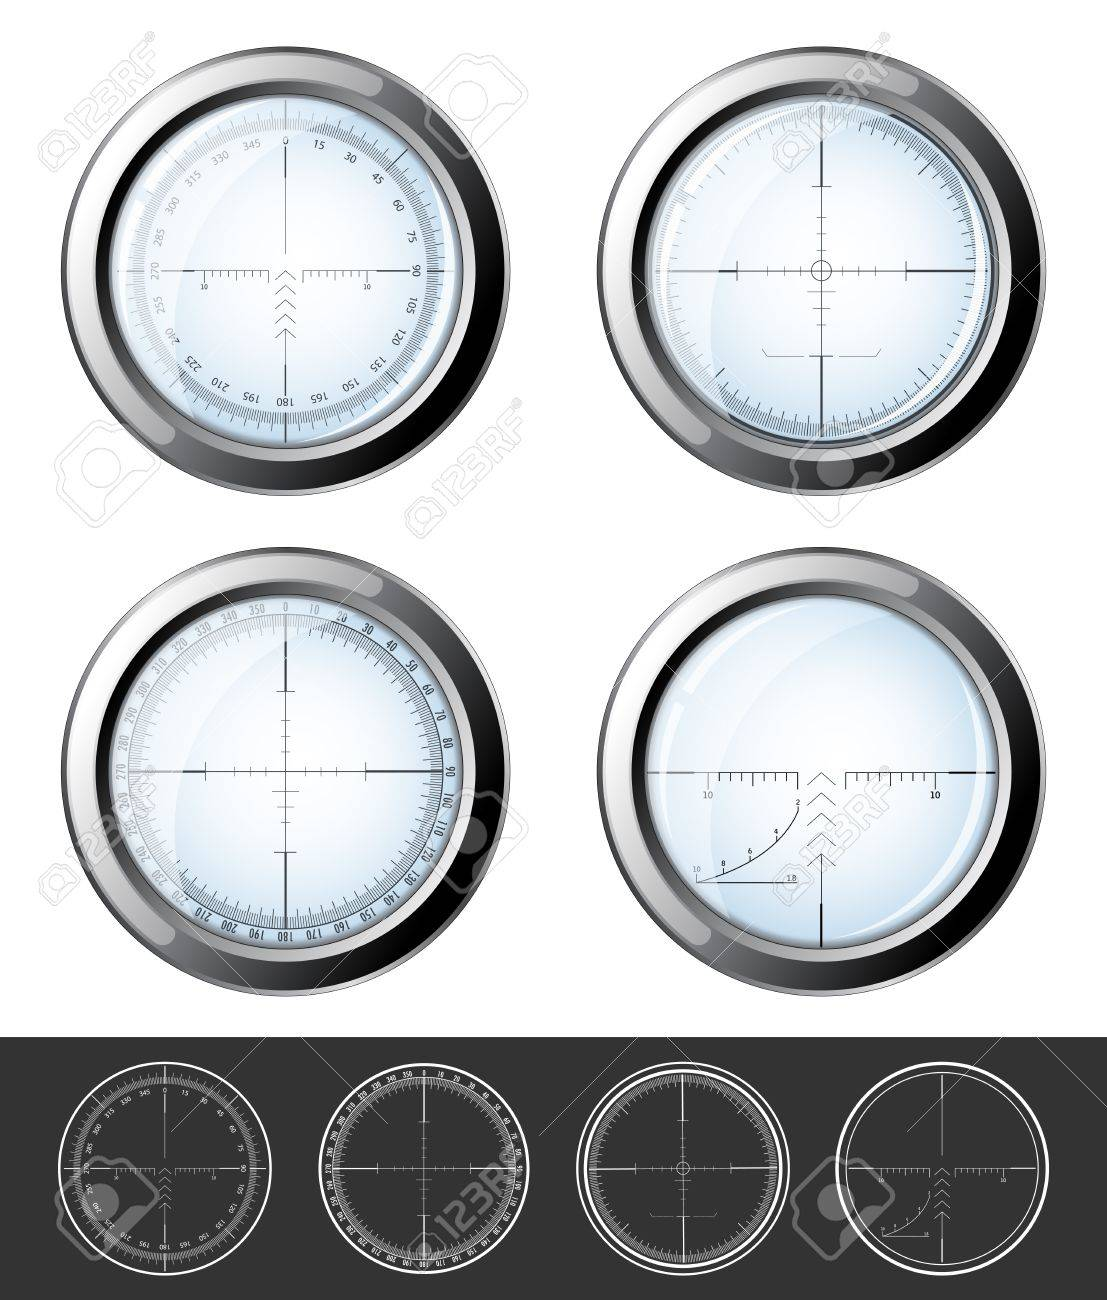 Set of military design elements - crosshair sniper scopes isolated